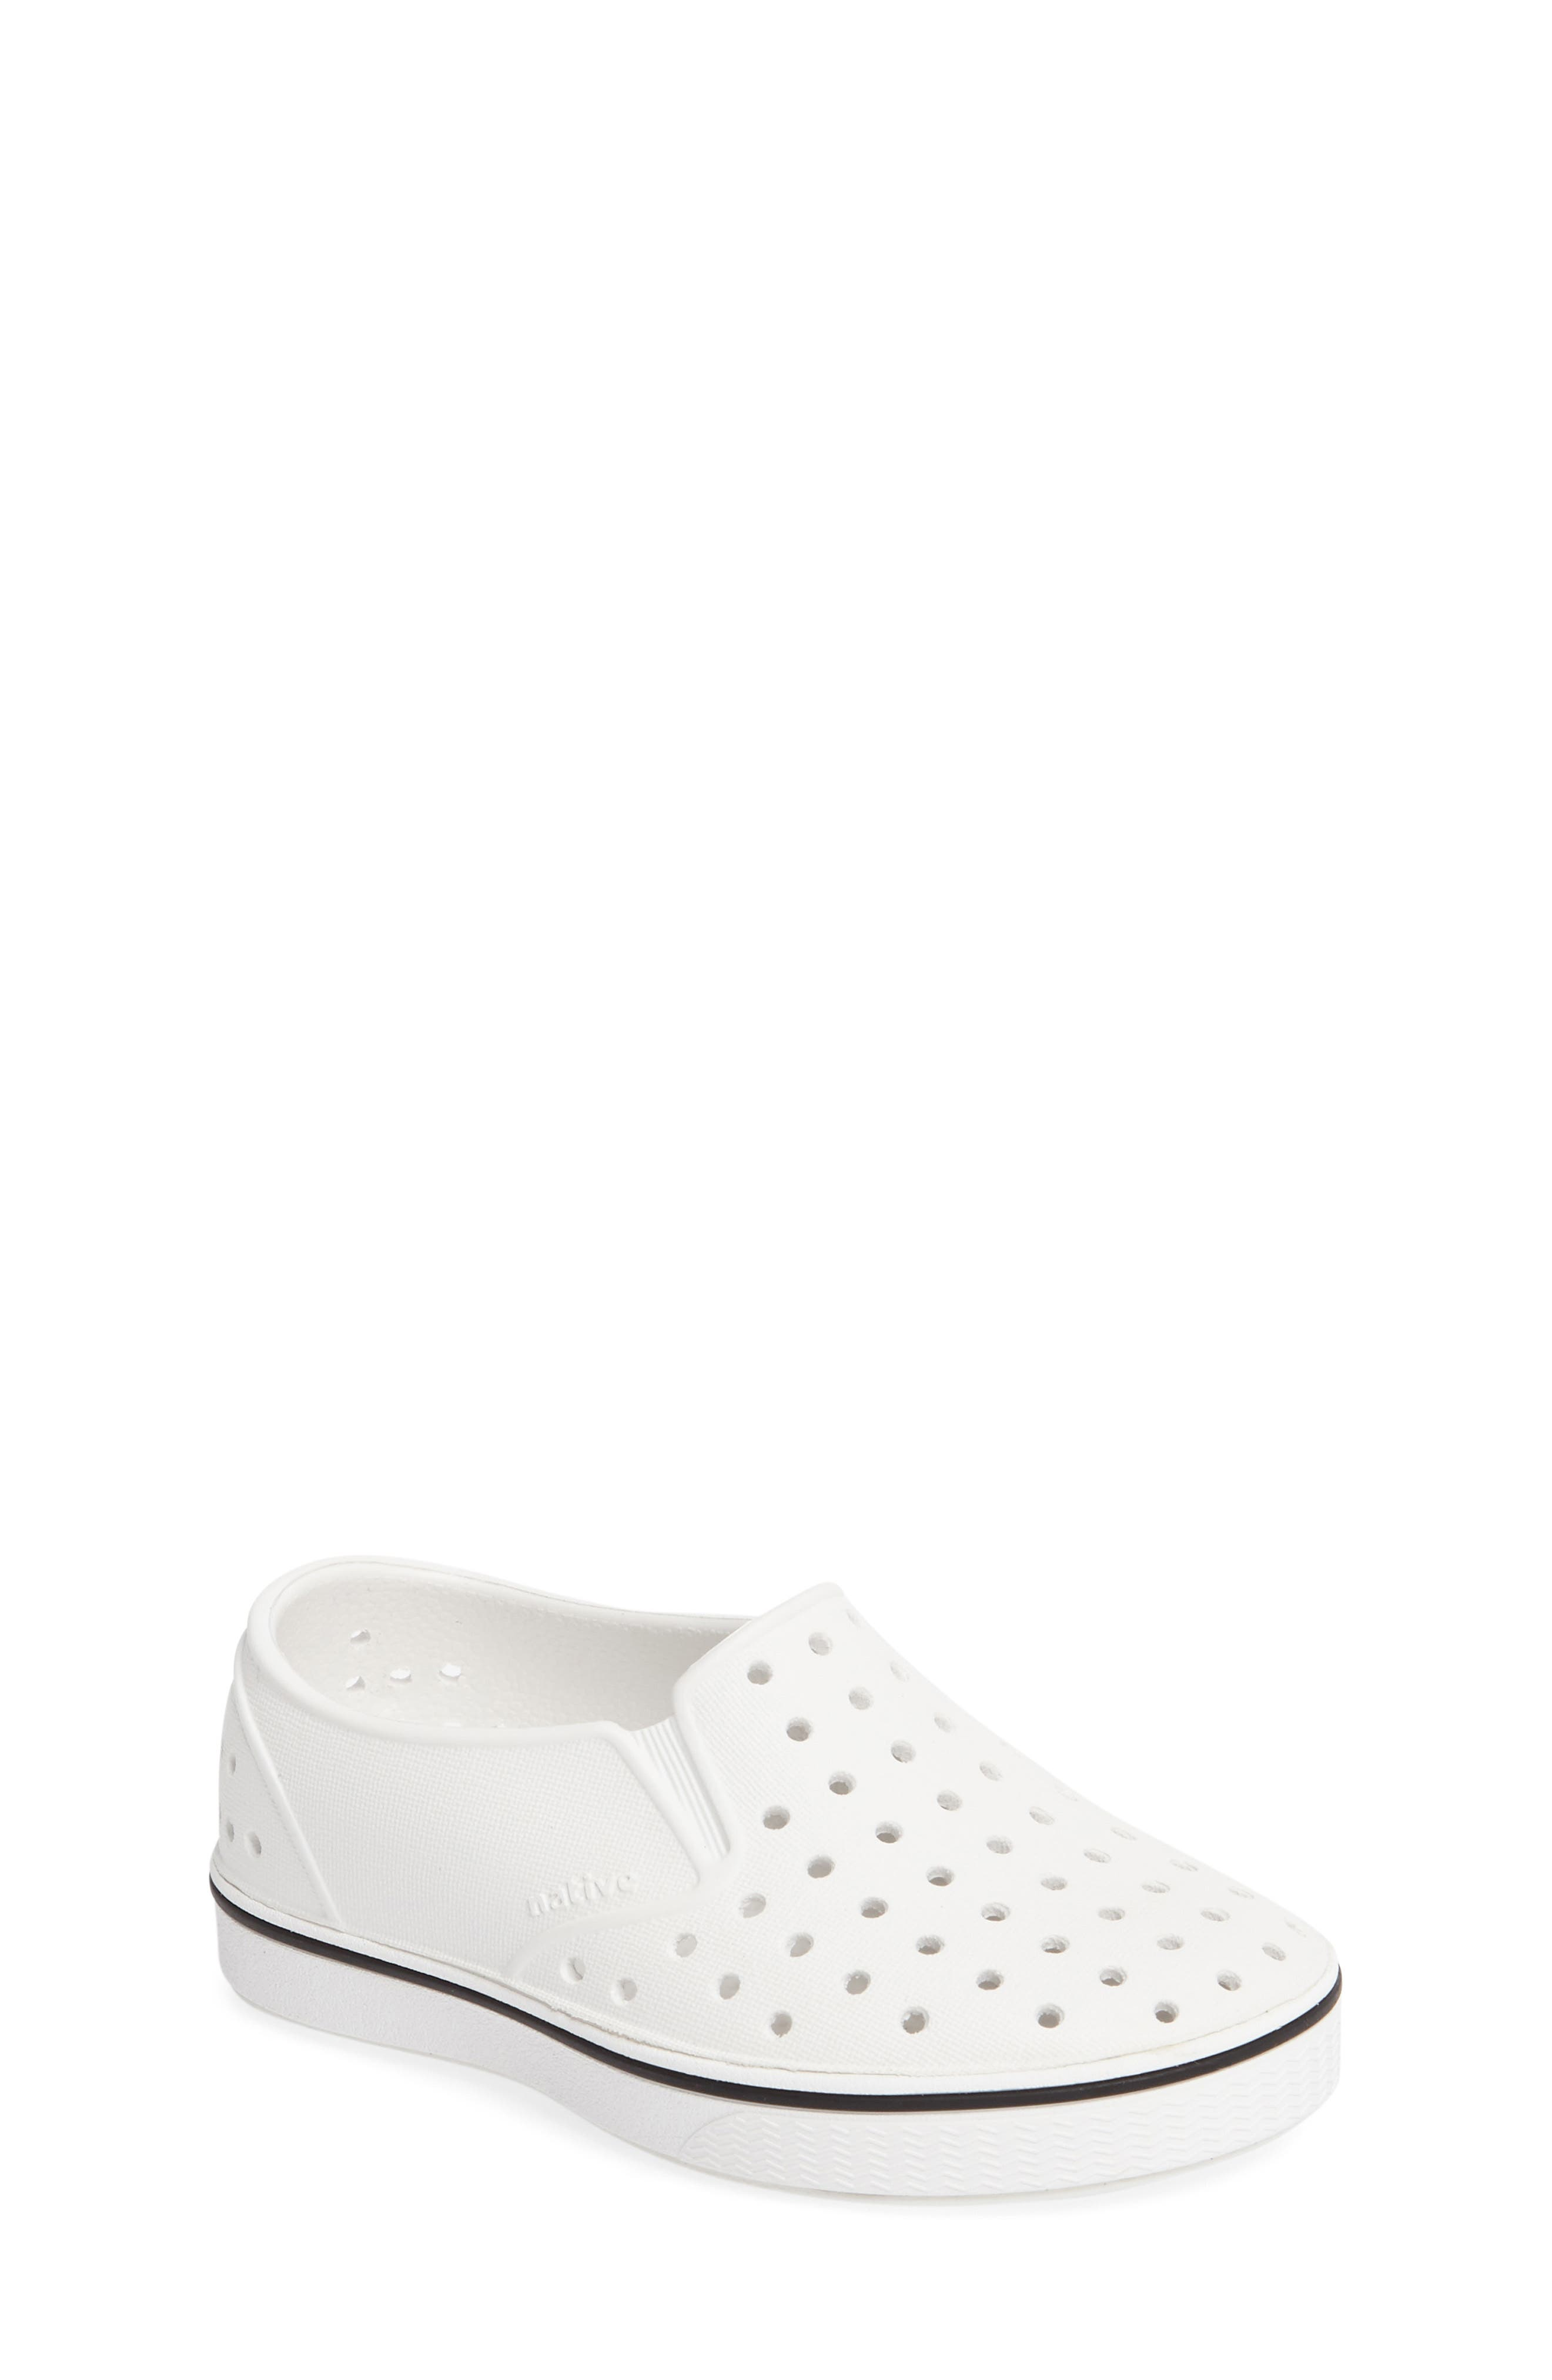 Native Shoes Miles Slip-On Sneaker (Baby, Walker, Toddler & Little Kid)